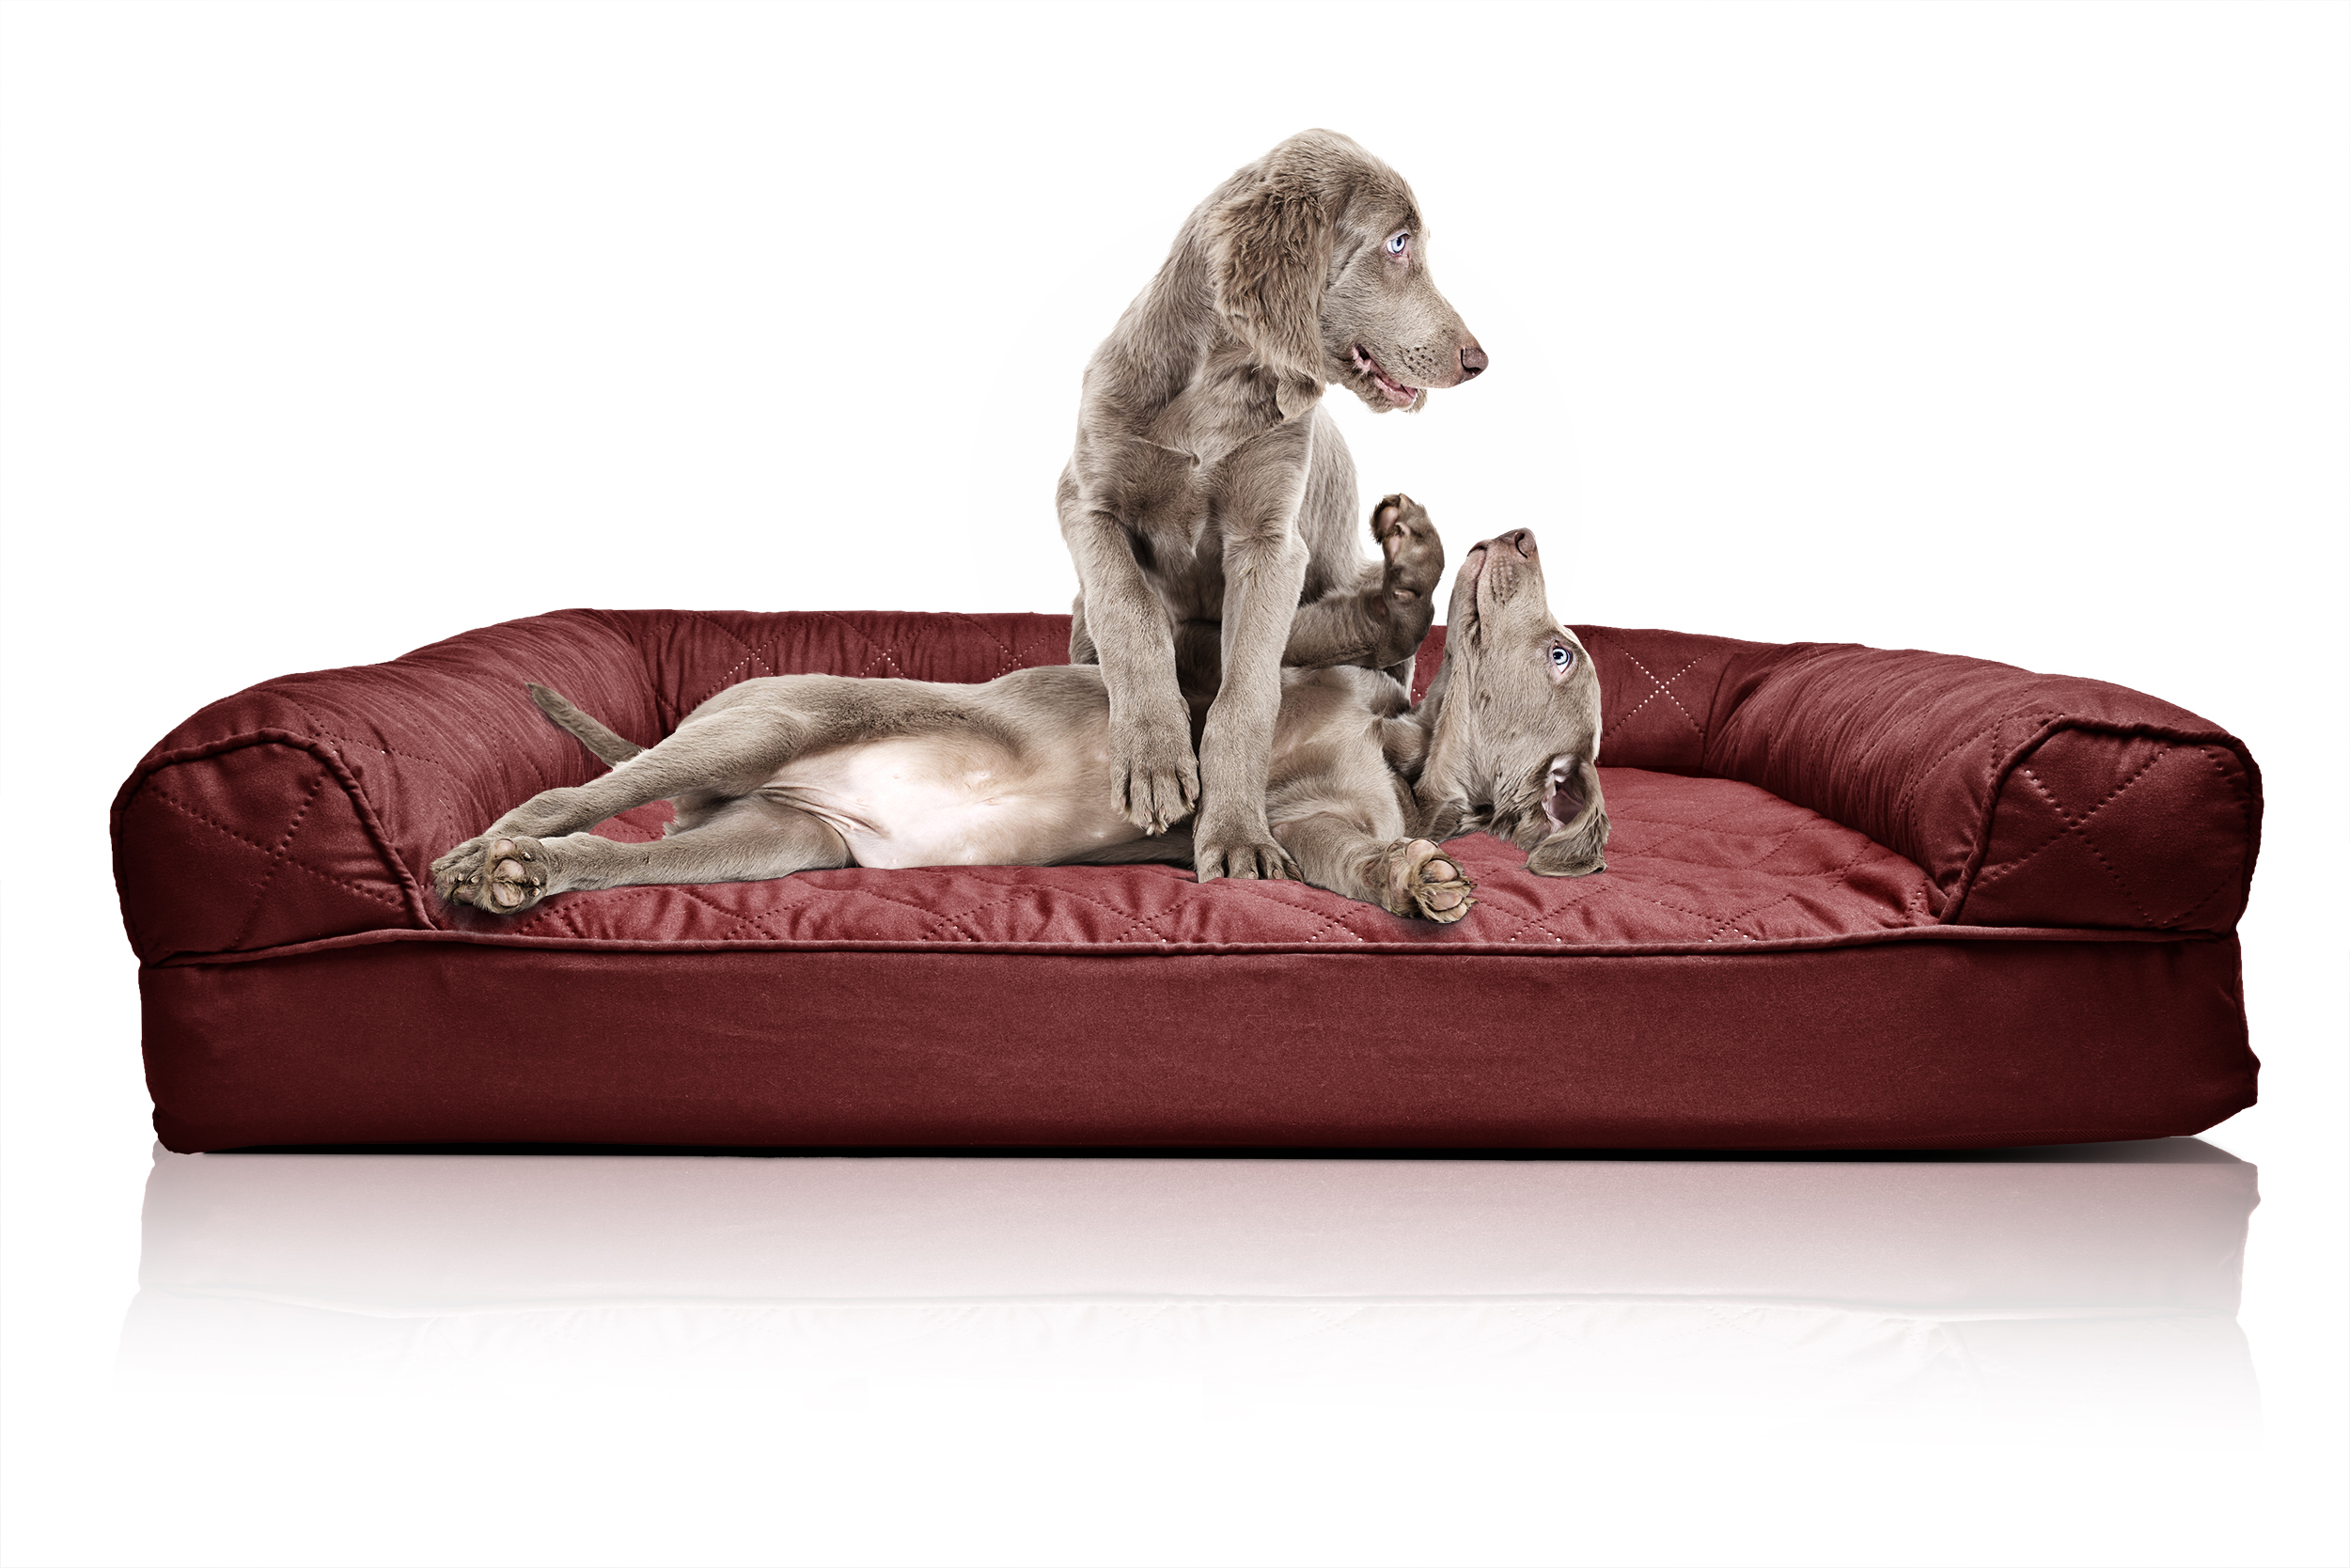 orthopedic sofa sacha large leather bed furhaven quilted dog pet ebay